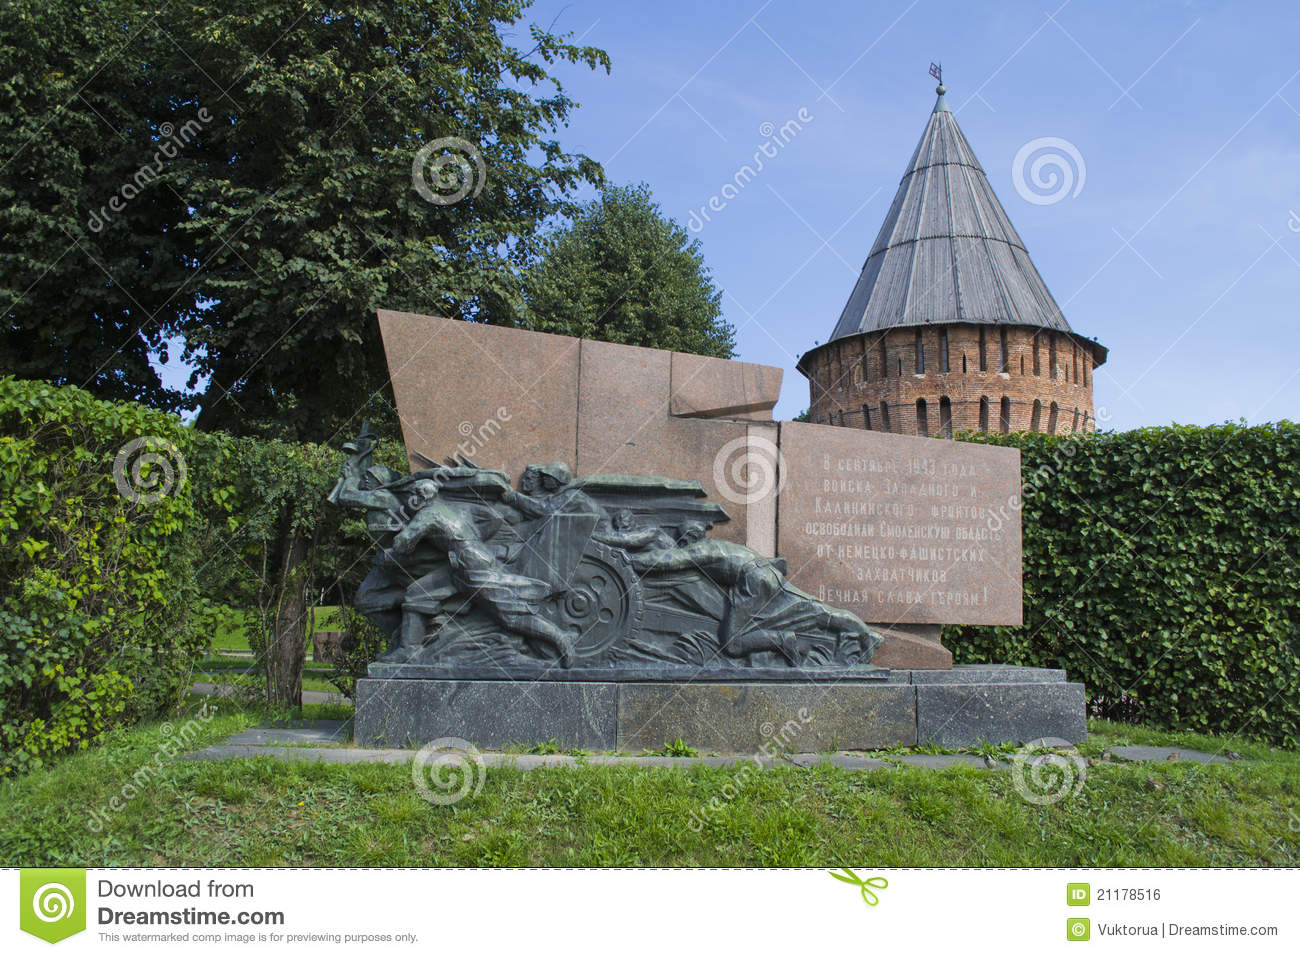 The monument to the heroes of World War II